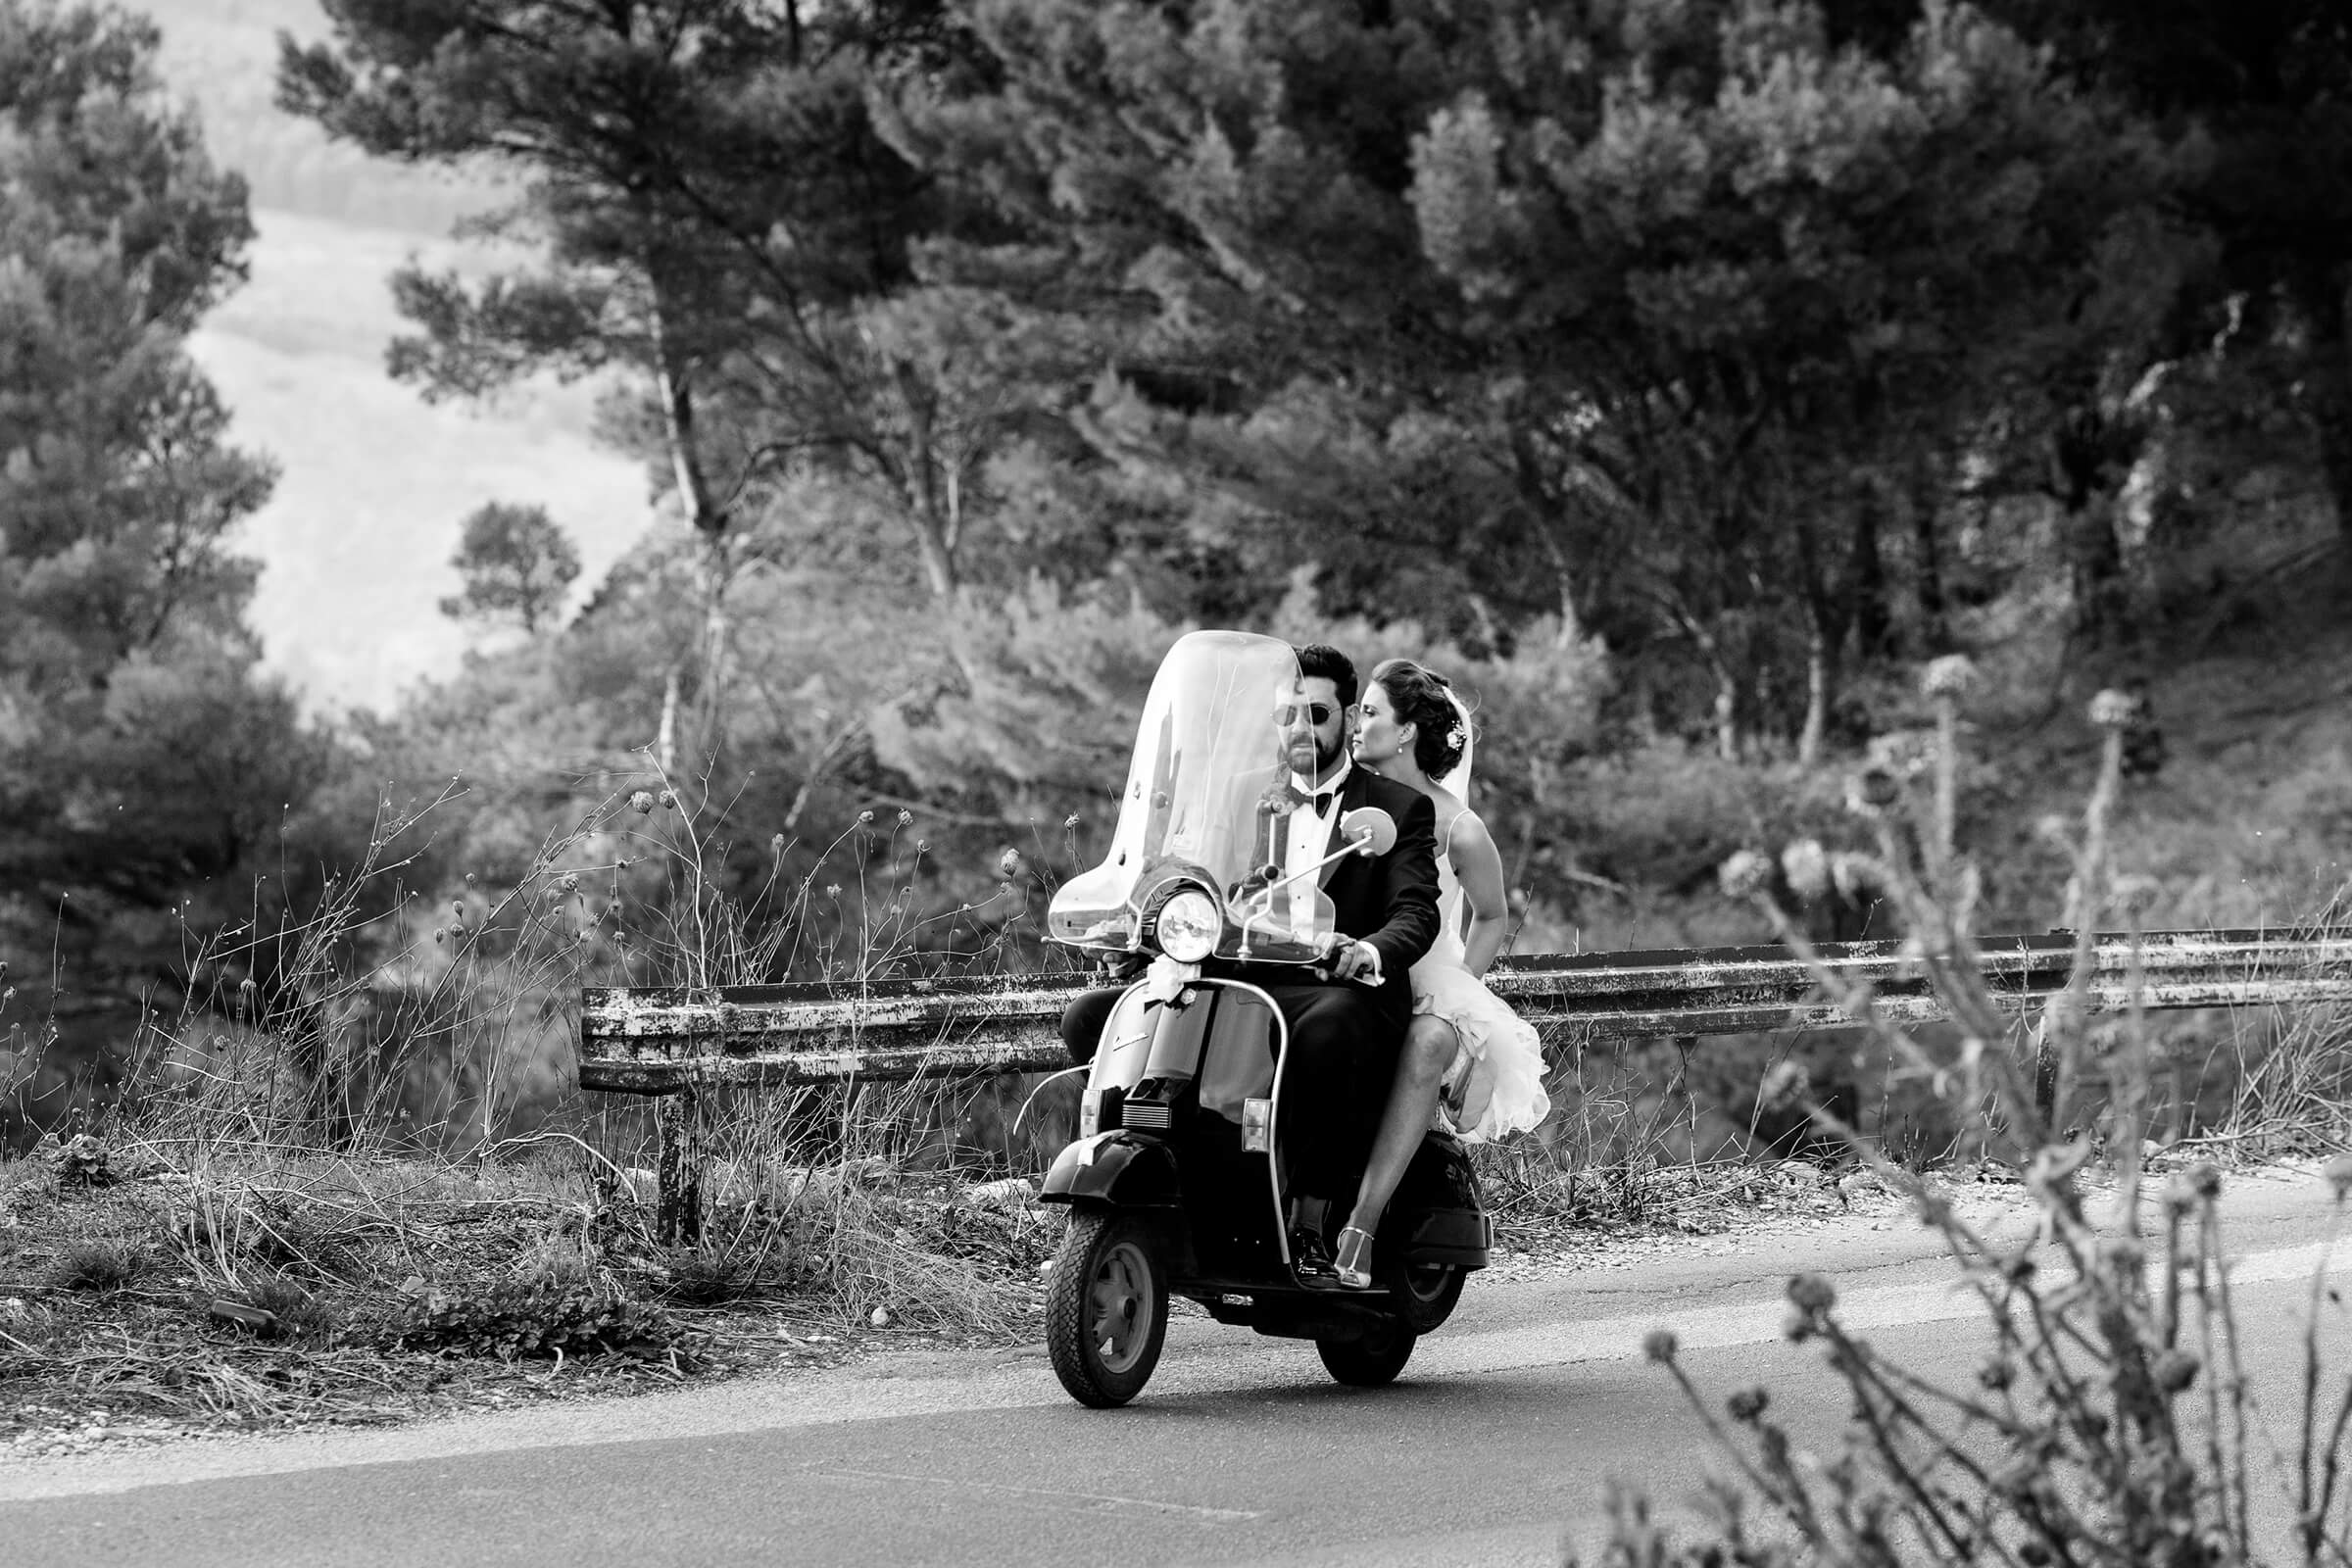 Couple exit on motor scooter - photo by Nino Lombardo Photographer